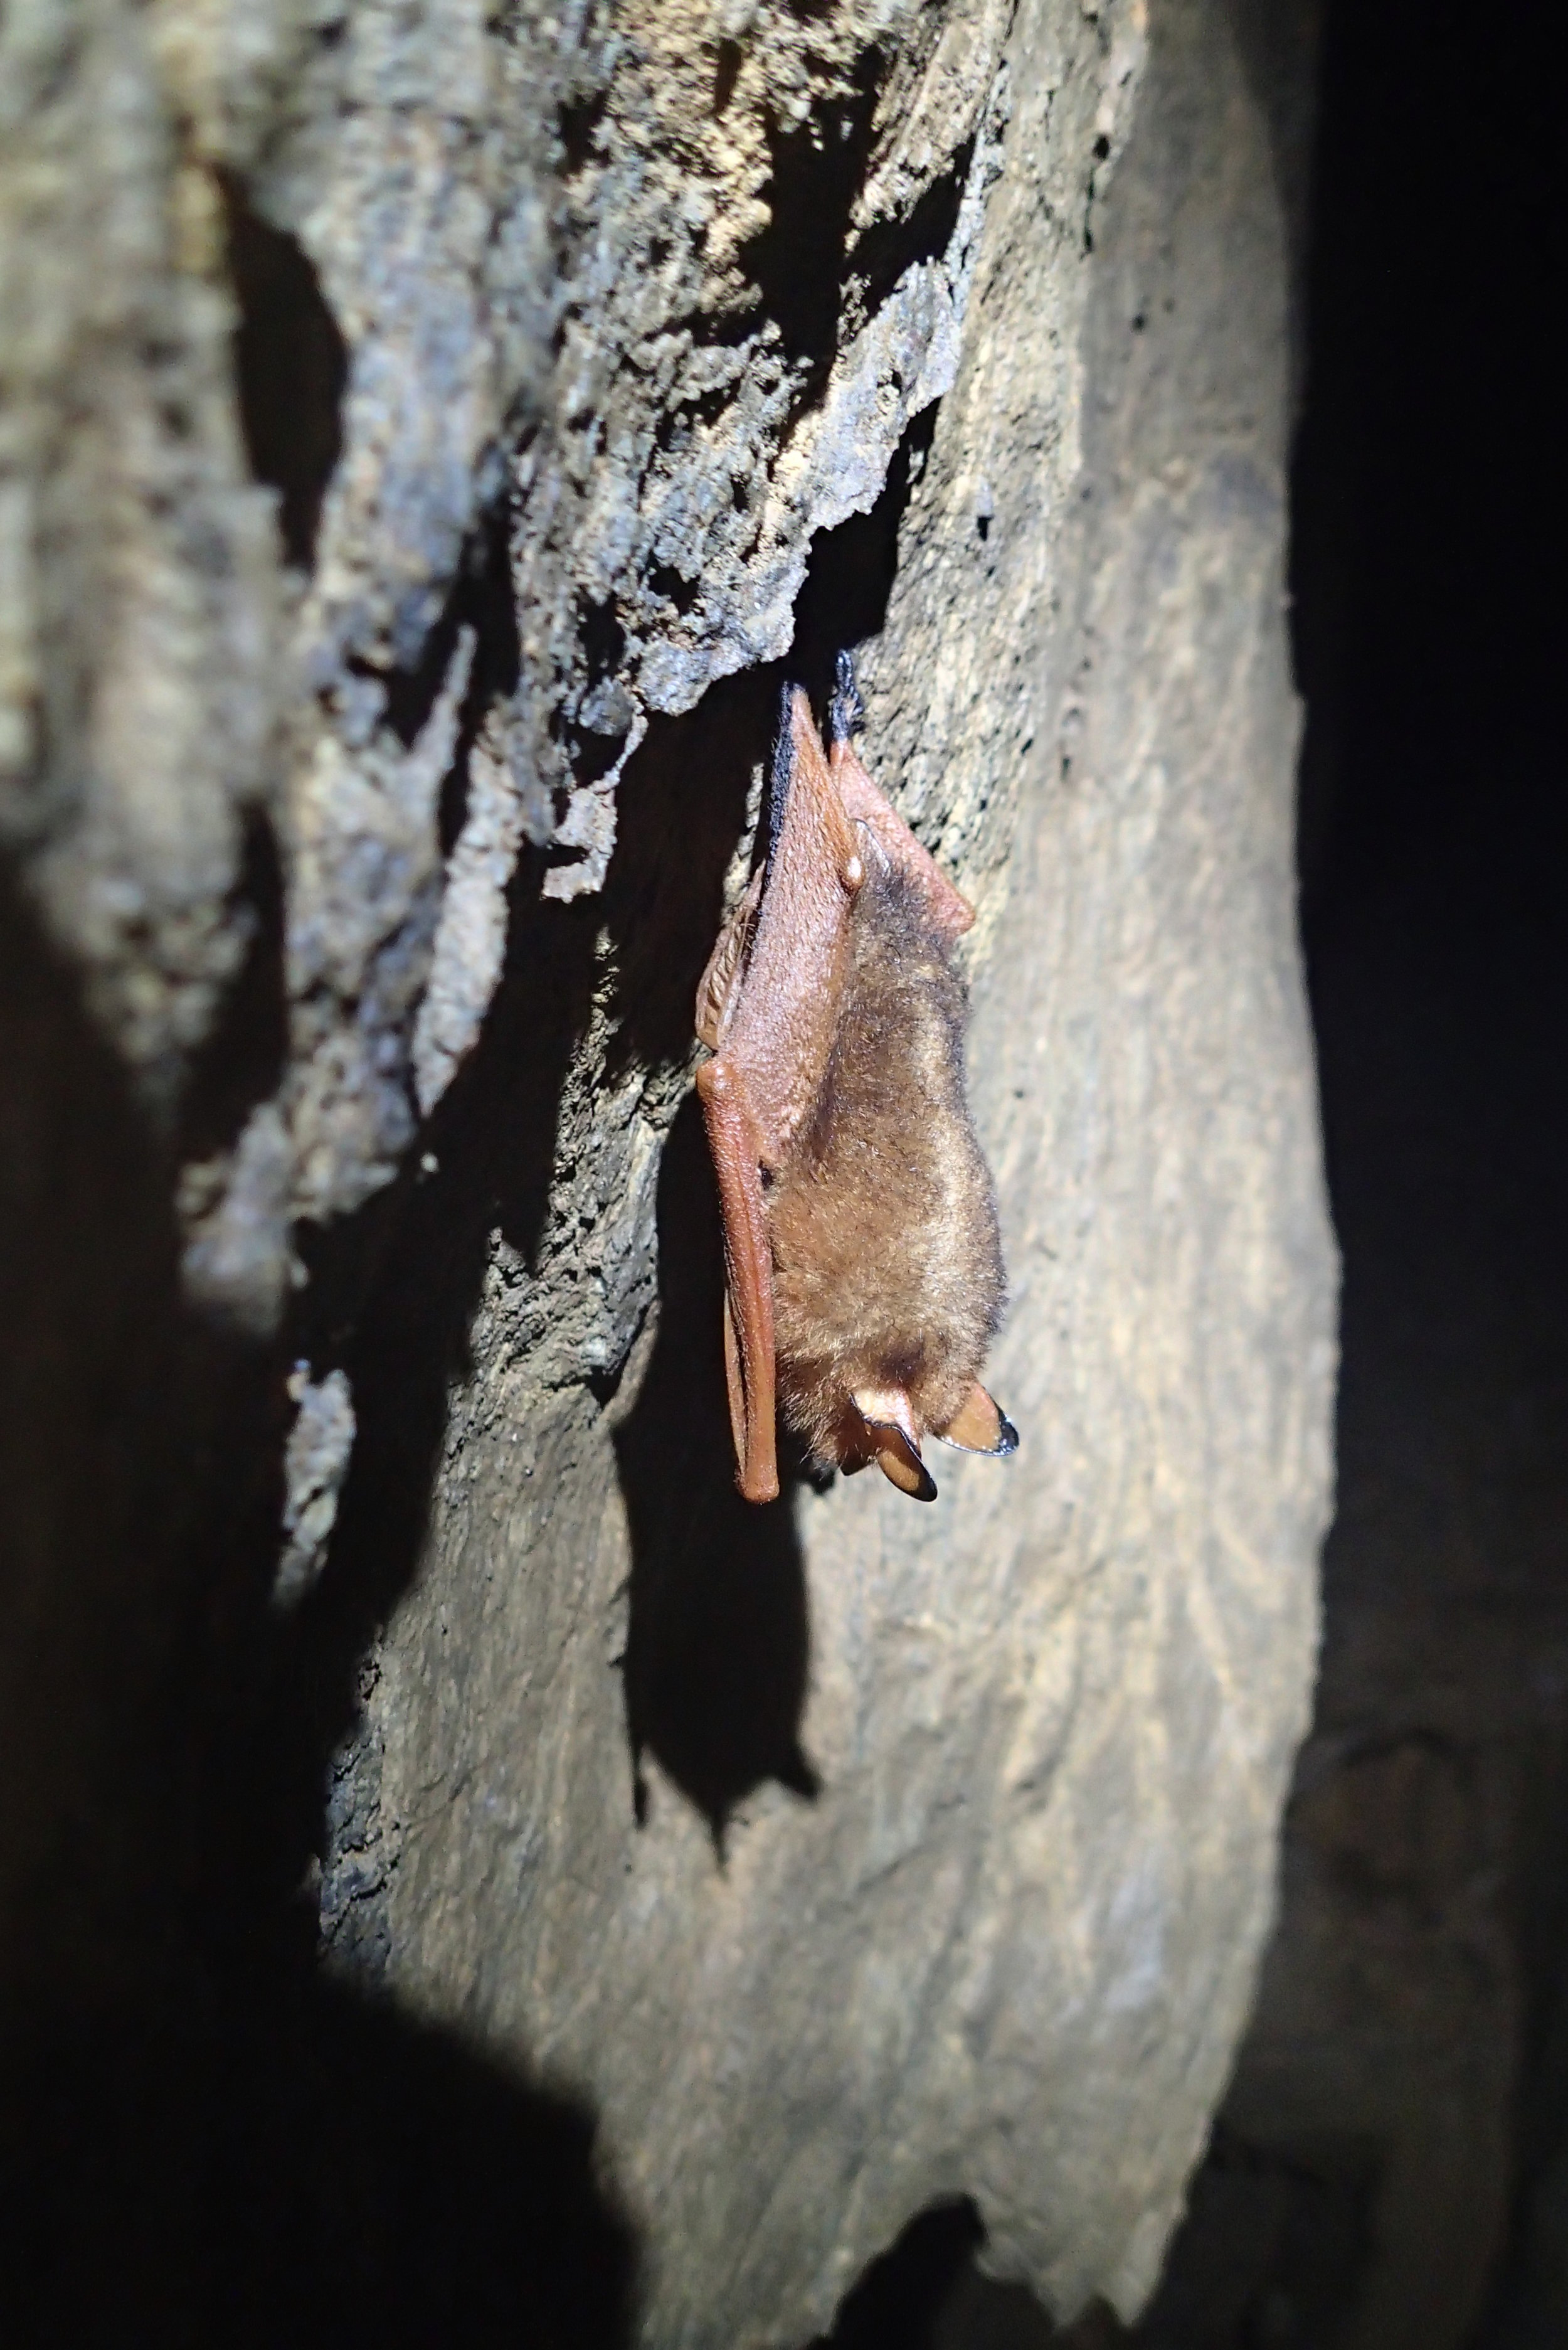 On our first Korean cave trip, and our last, we saw these endangered copper wing bats.